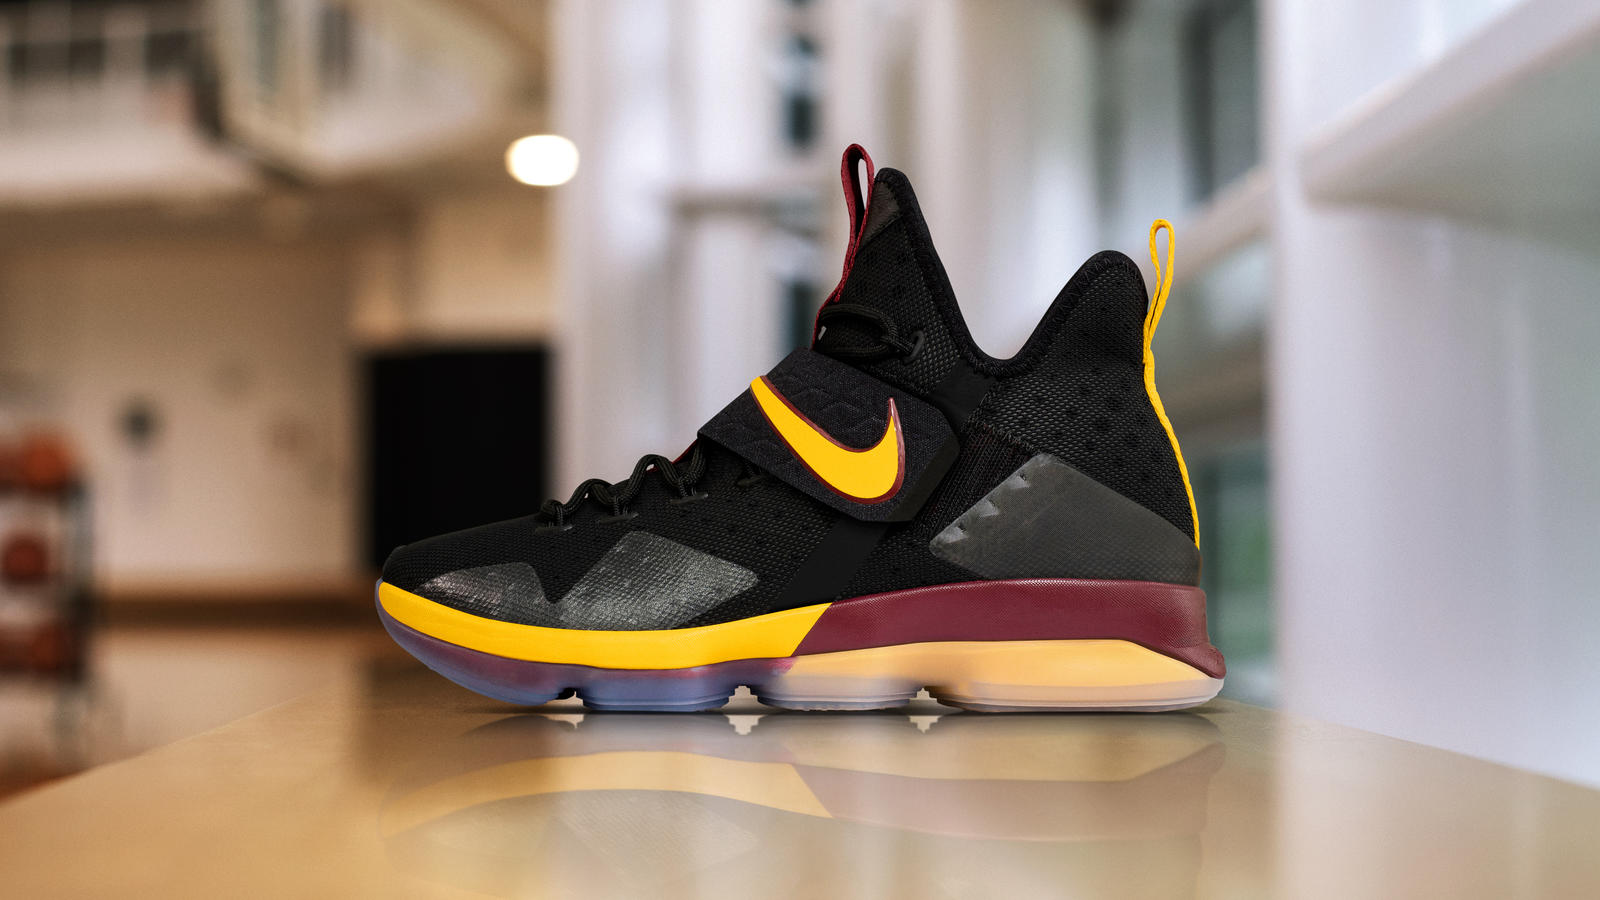 competitive price 68533 7d5d9 LEBRON 14 PE - Nike News